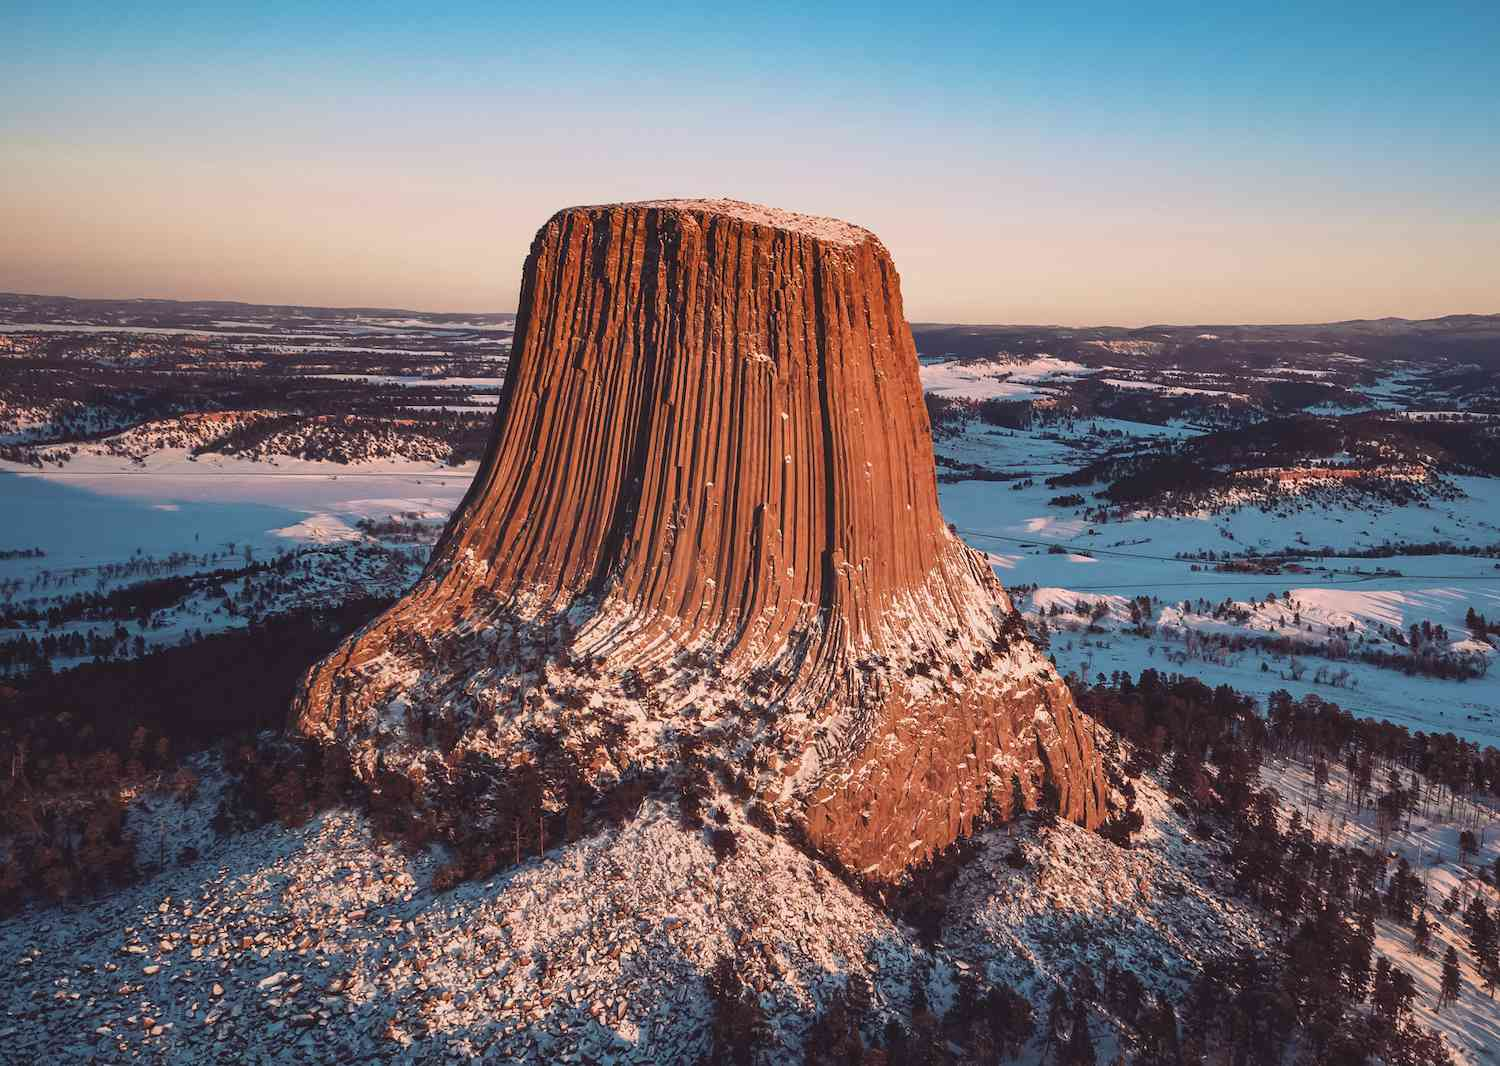 Devil's Tower rises above the snow-covered Black Hills at dawn